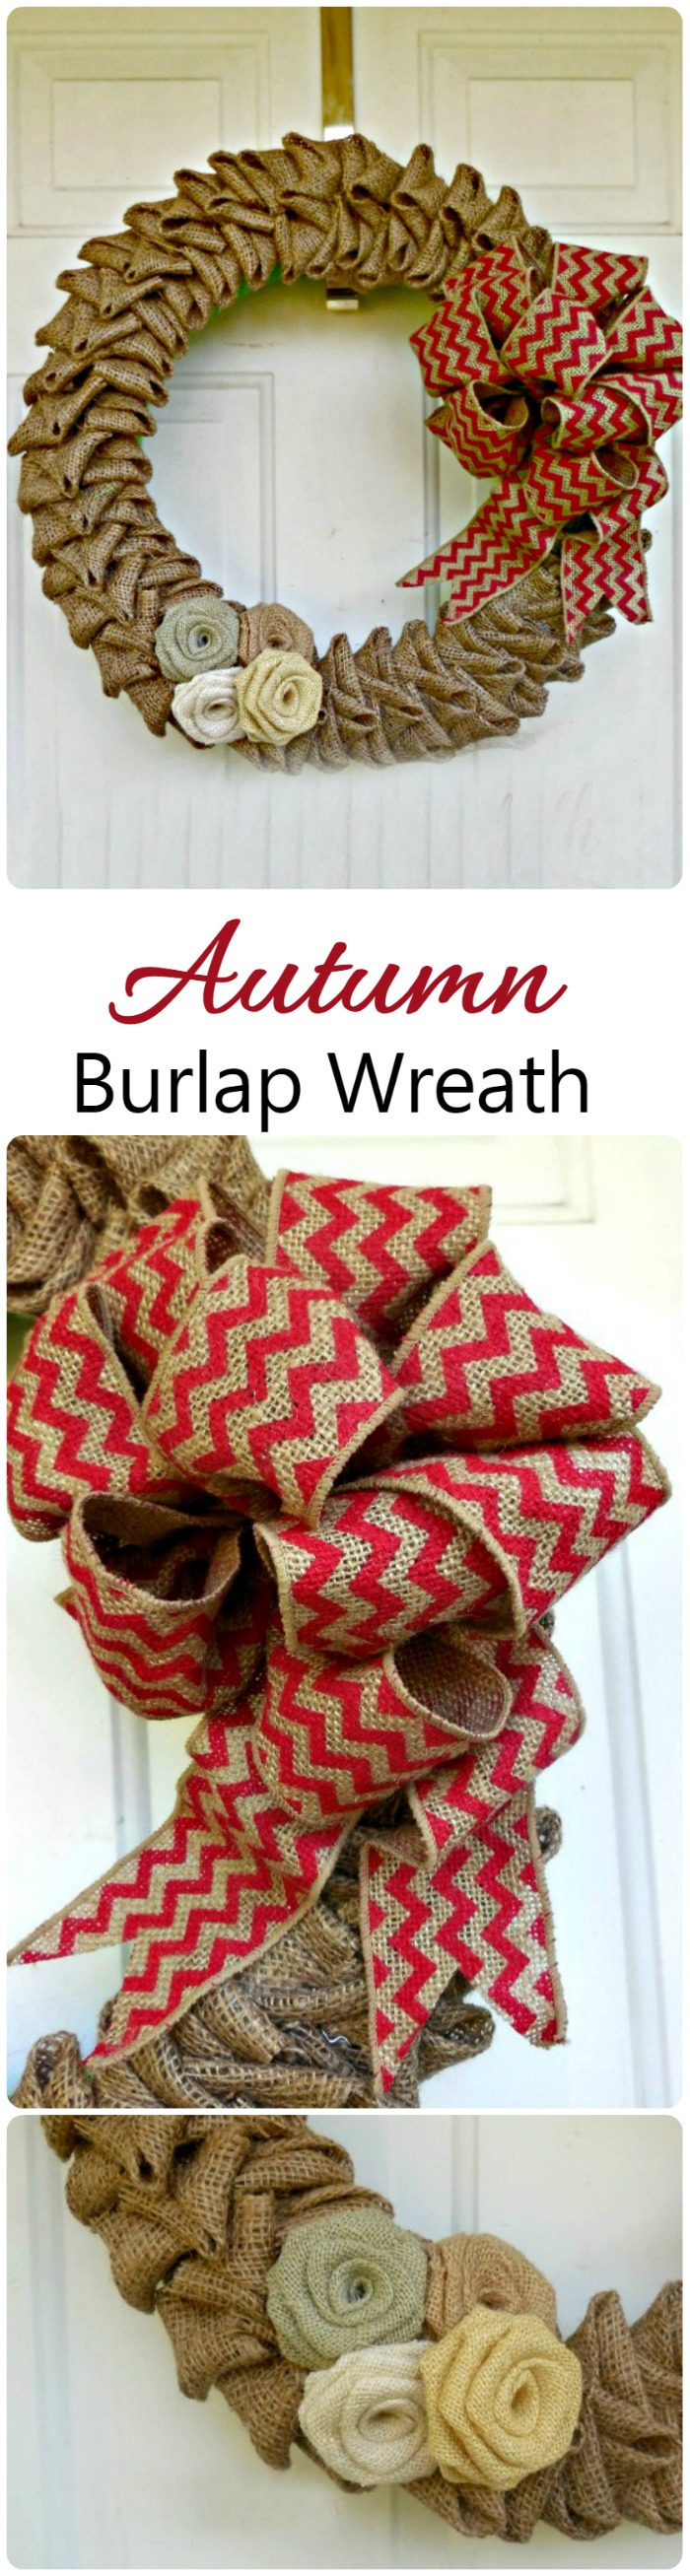 This autumn burlap wreath comes together quickly and makes a lovely door decoration.